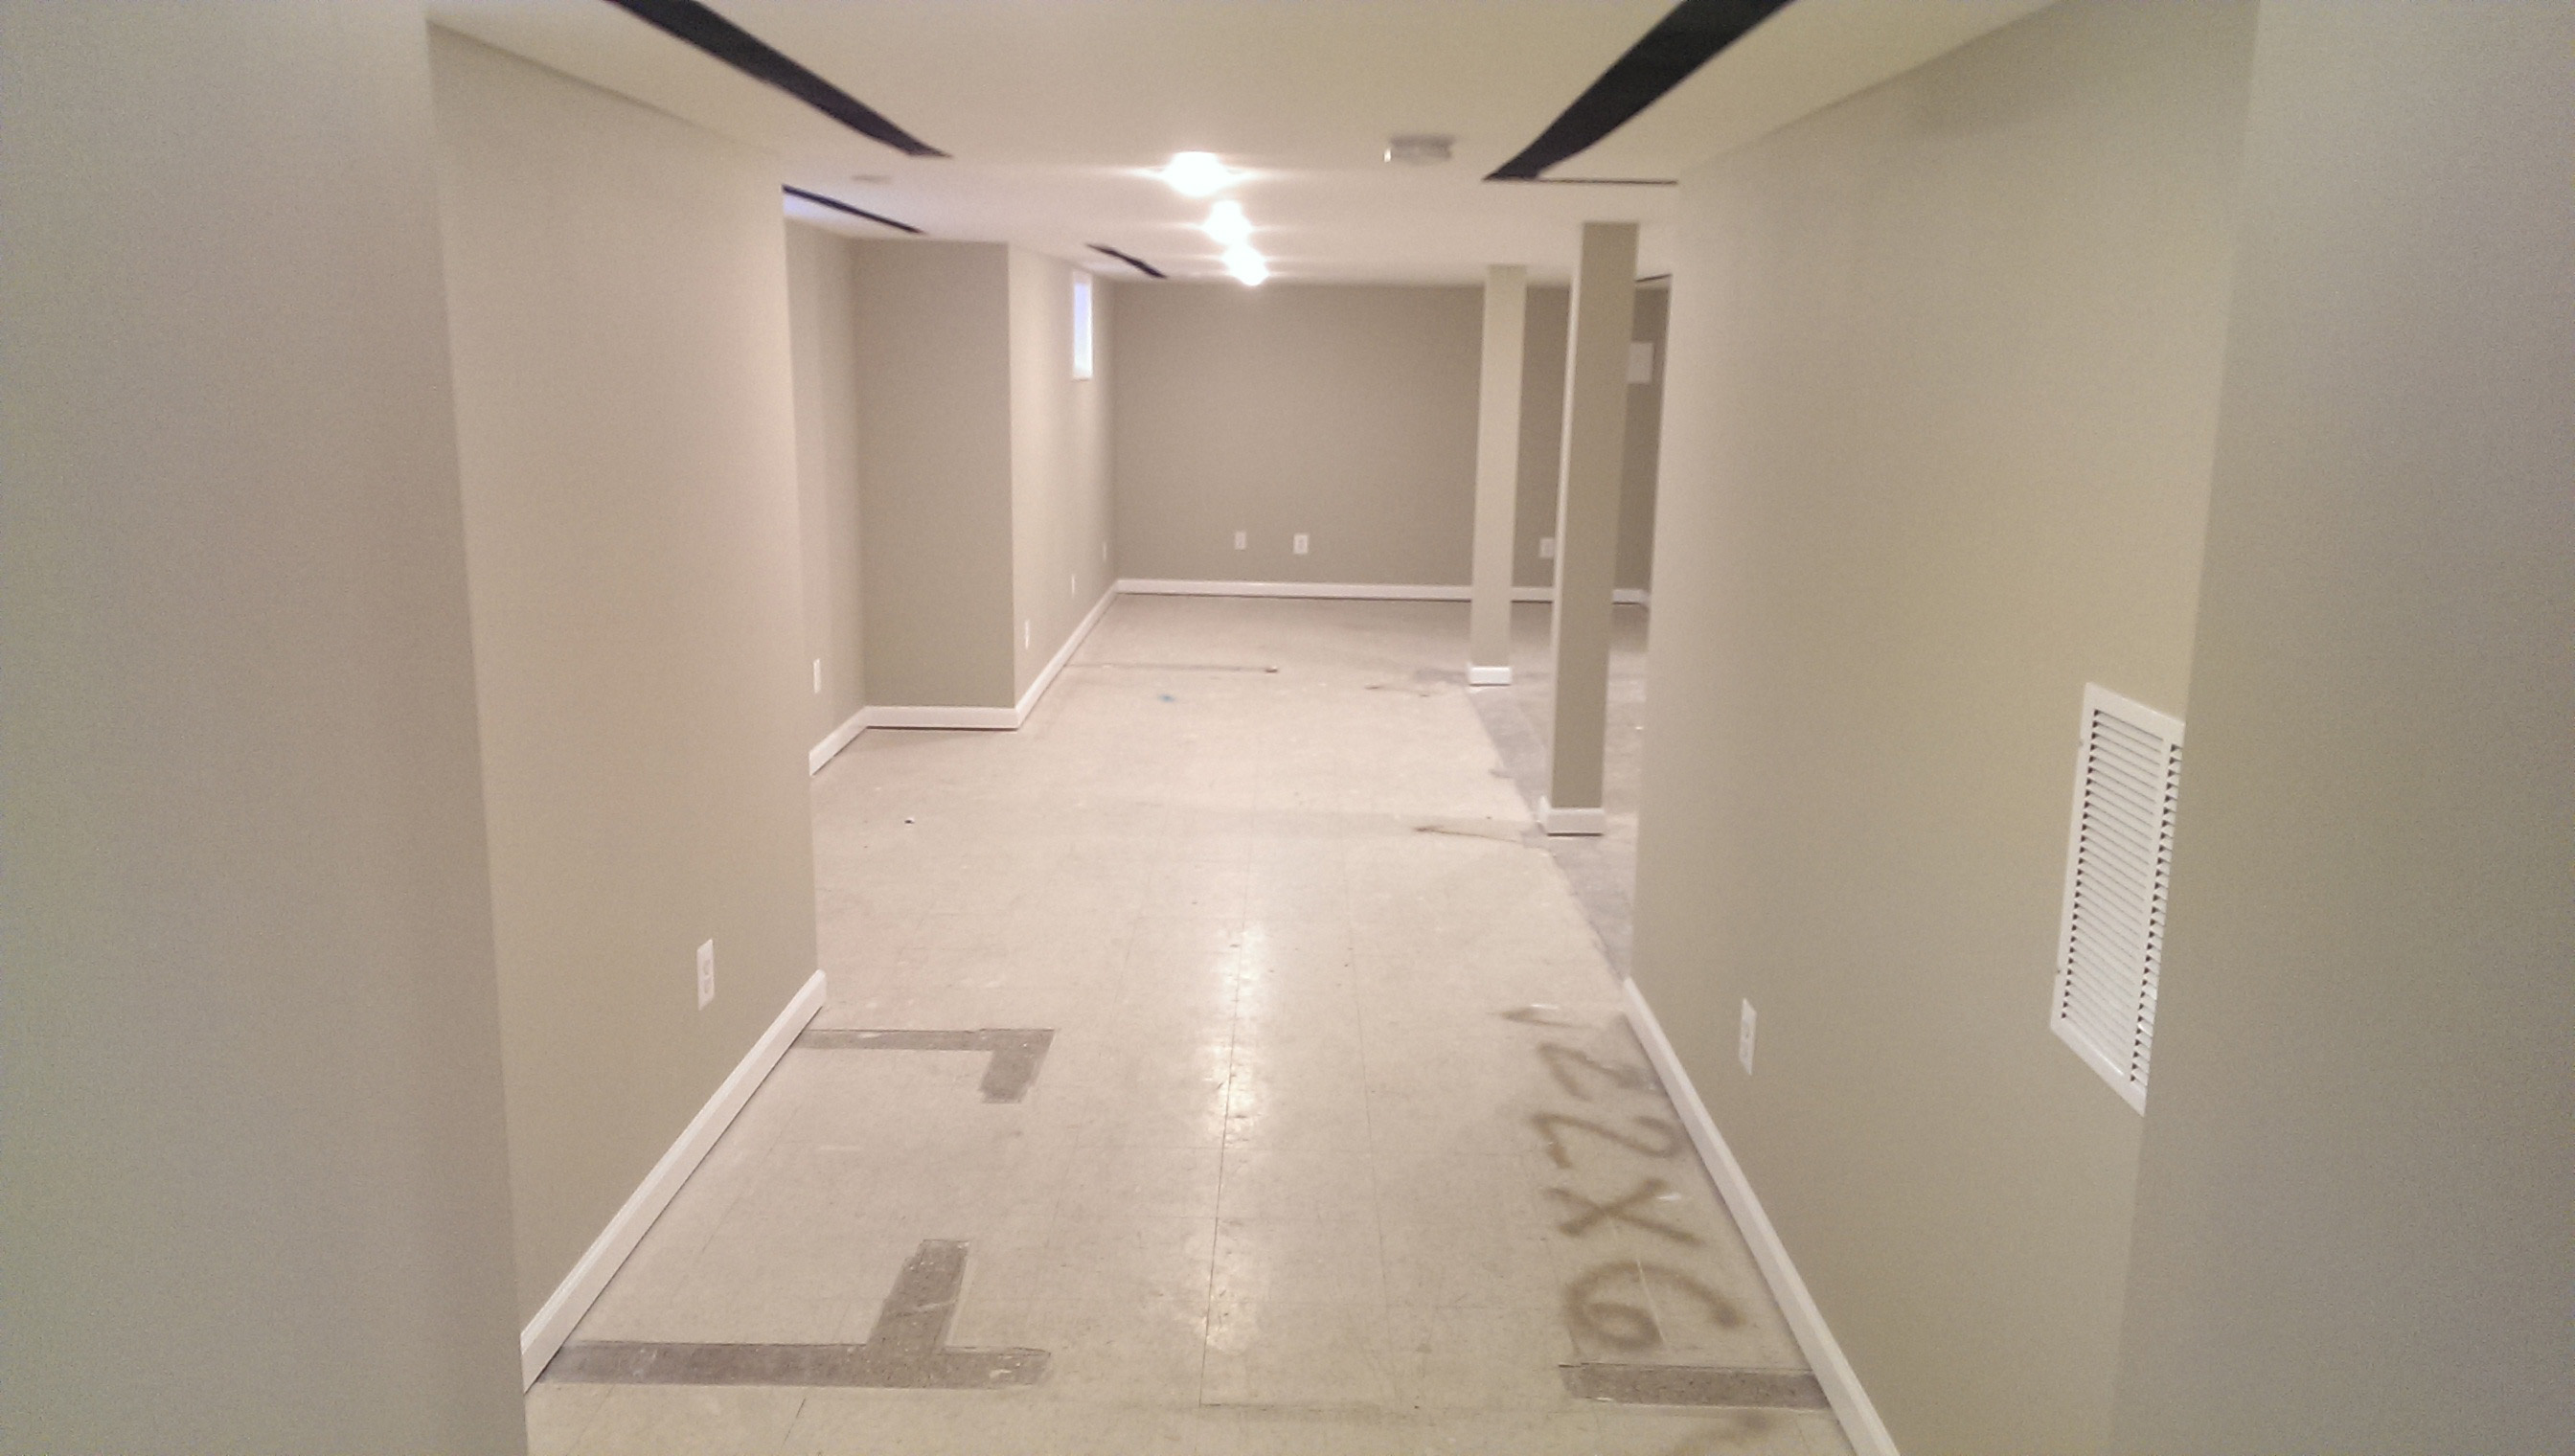 Basement Remodel Contractor in Rockville, MD